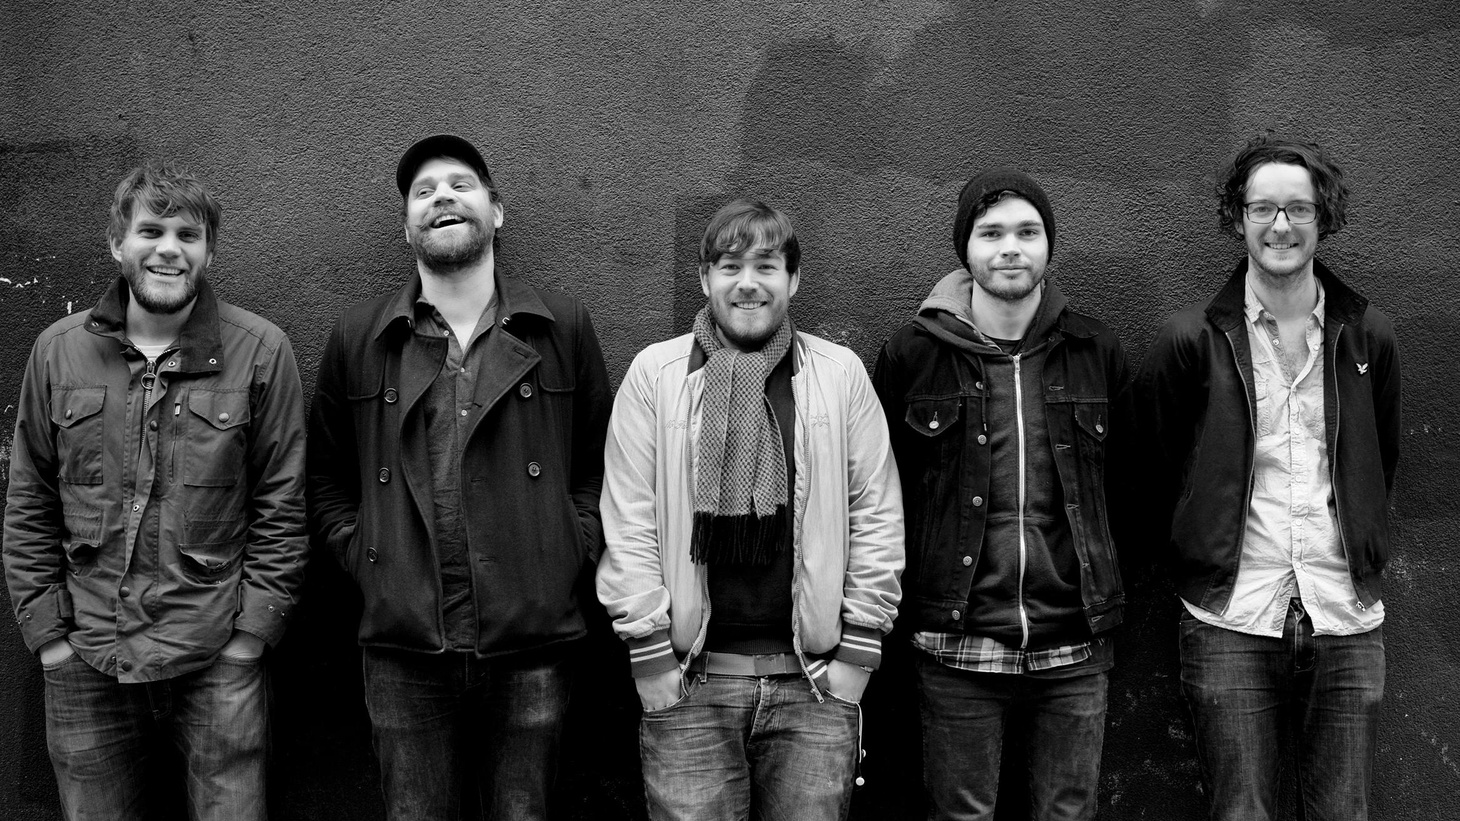 Scottish band Frightened Rabbit have created one of Jason Bentley's favorite albums of the year...